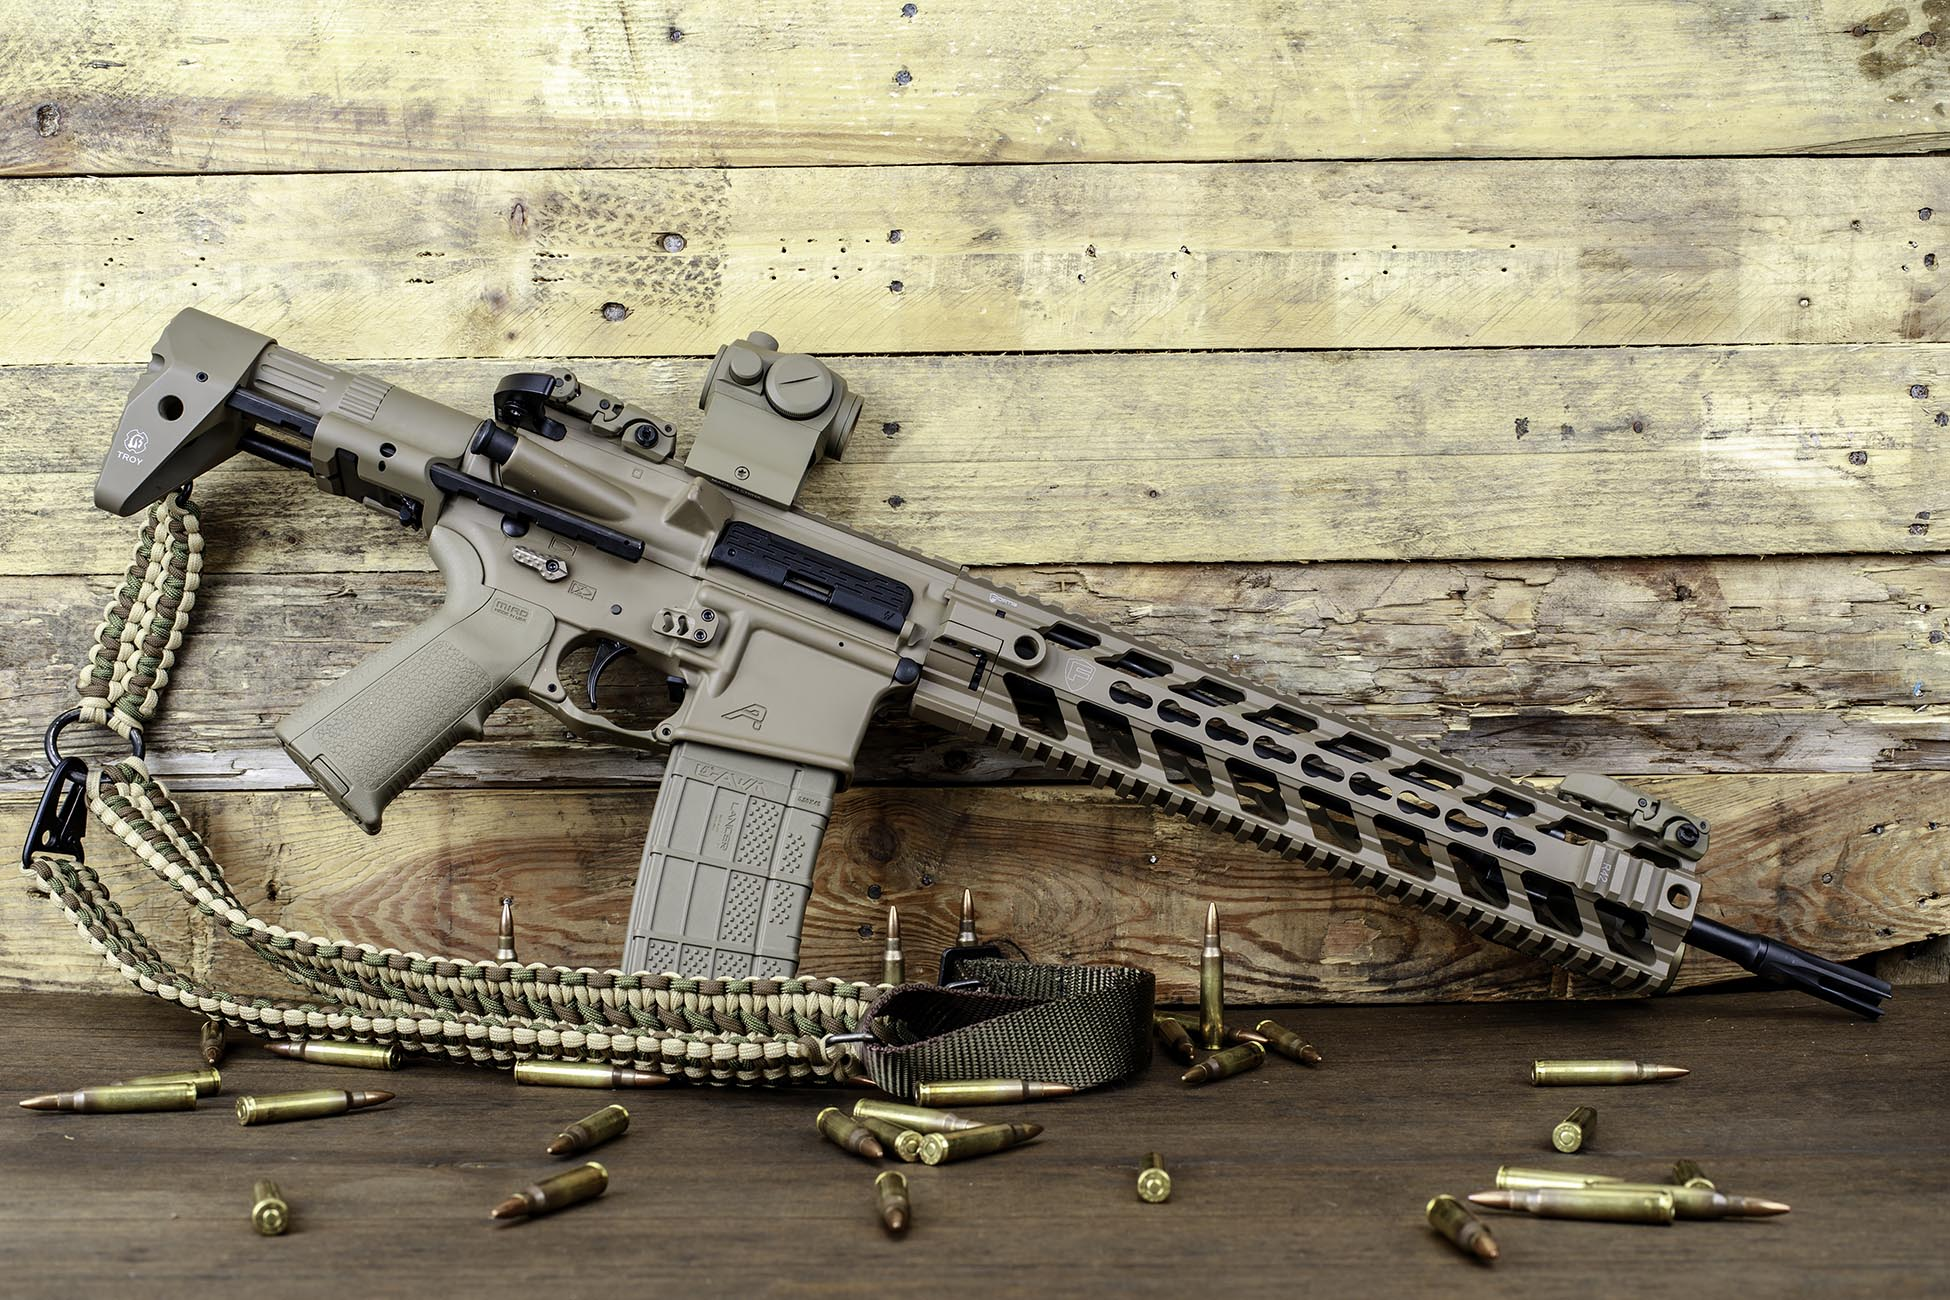 AR 15 PDW Stock installed on a lightweight and compact AR15 build for home defense use